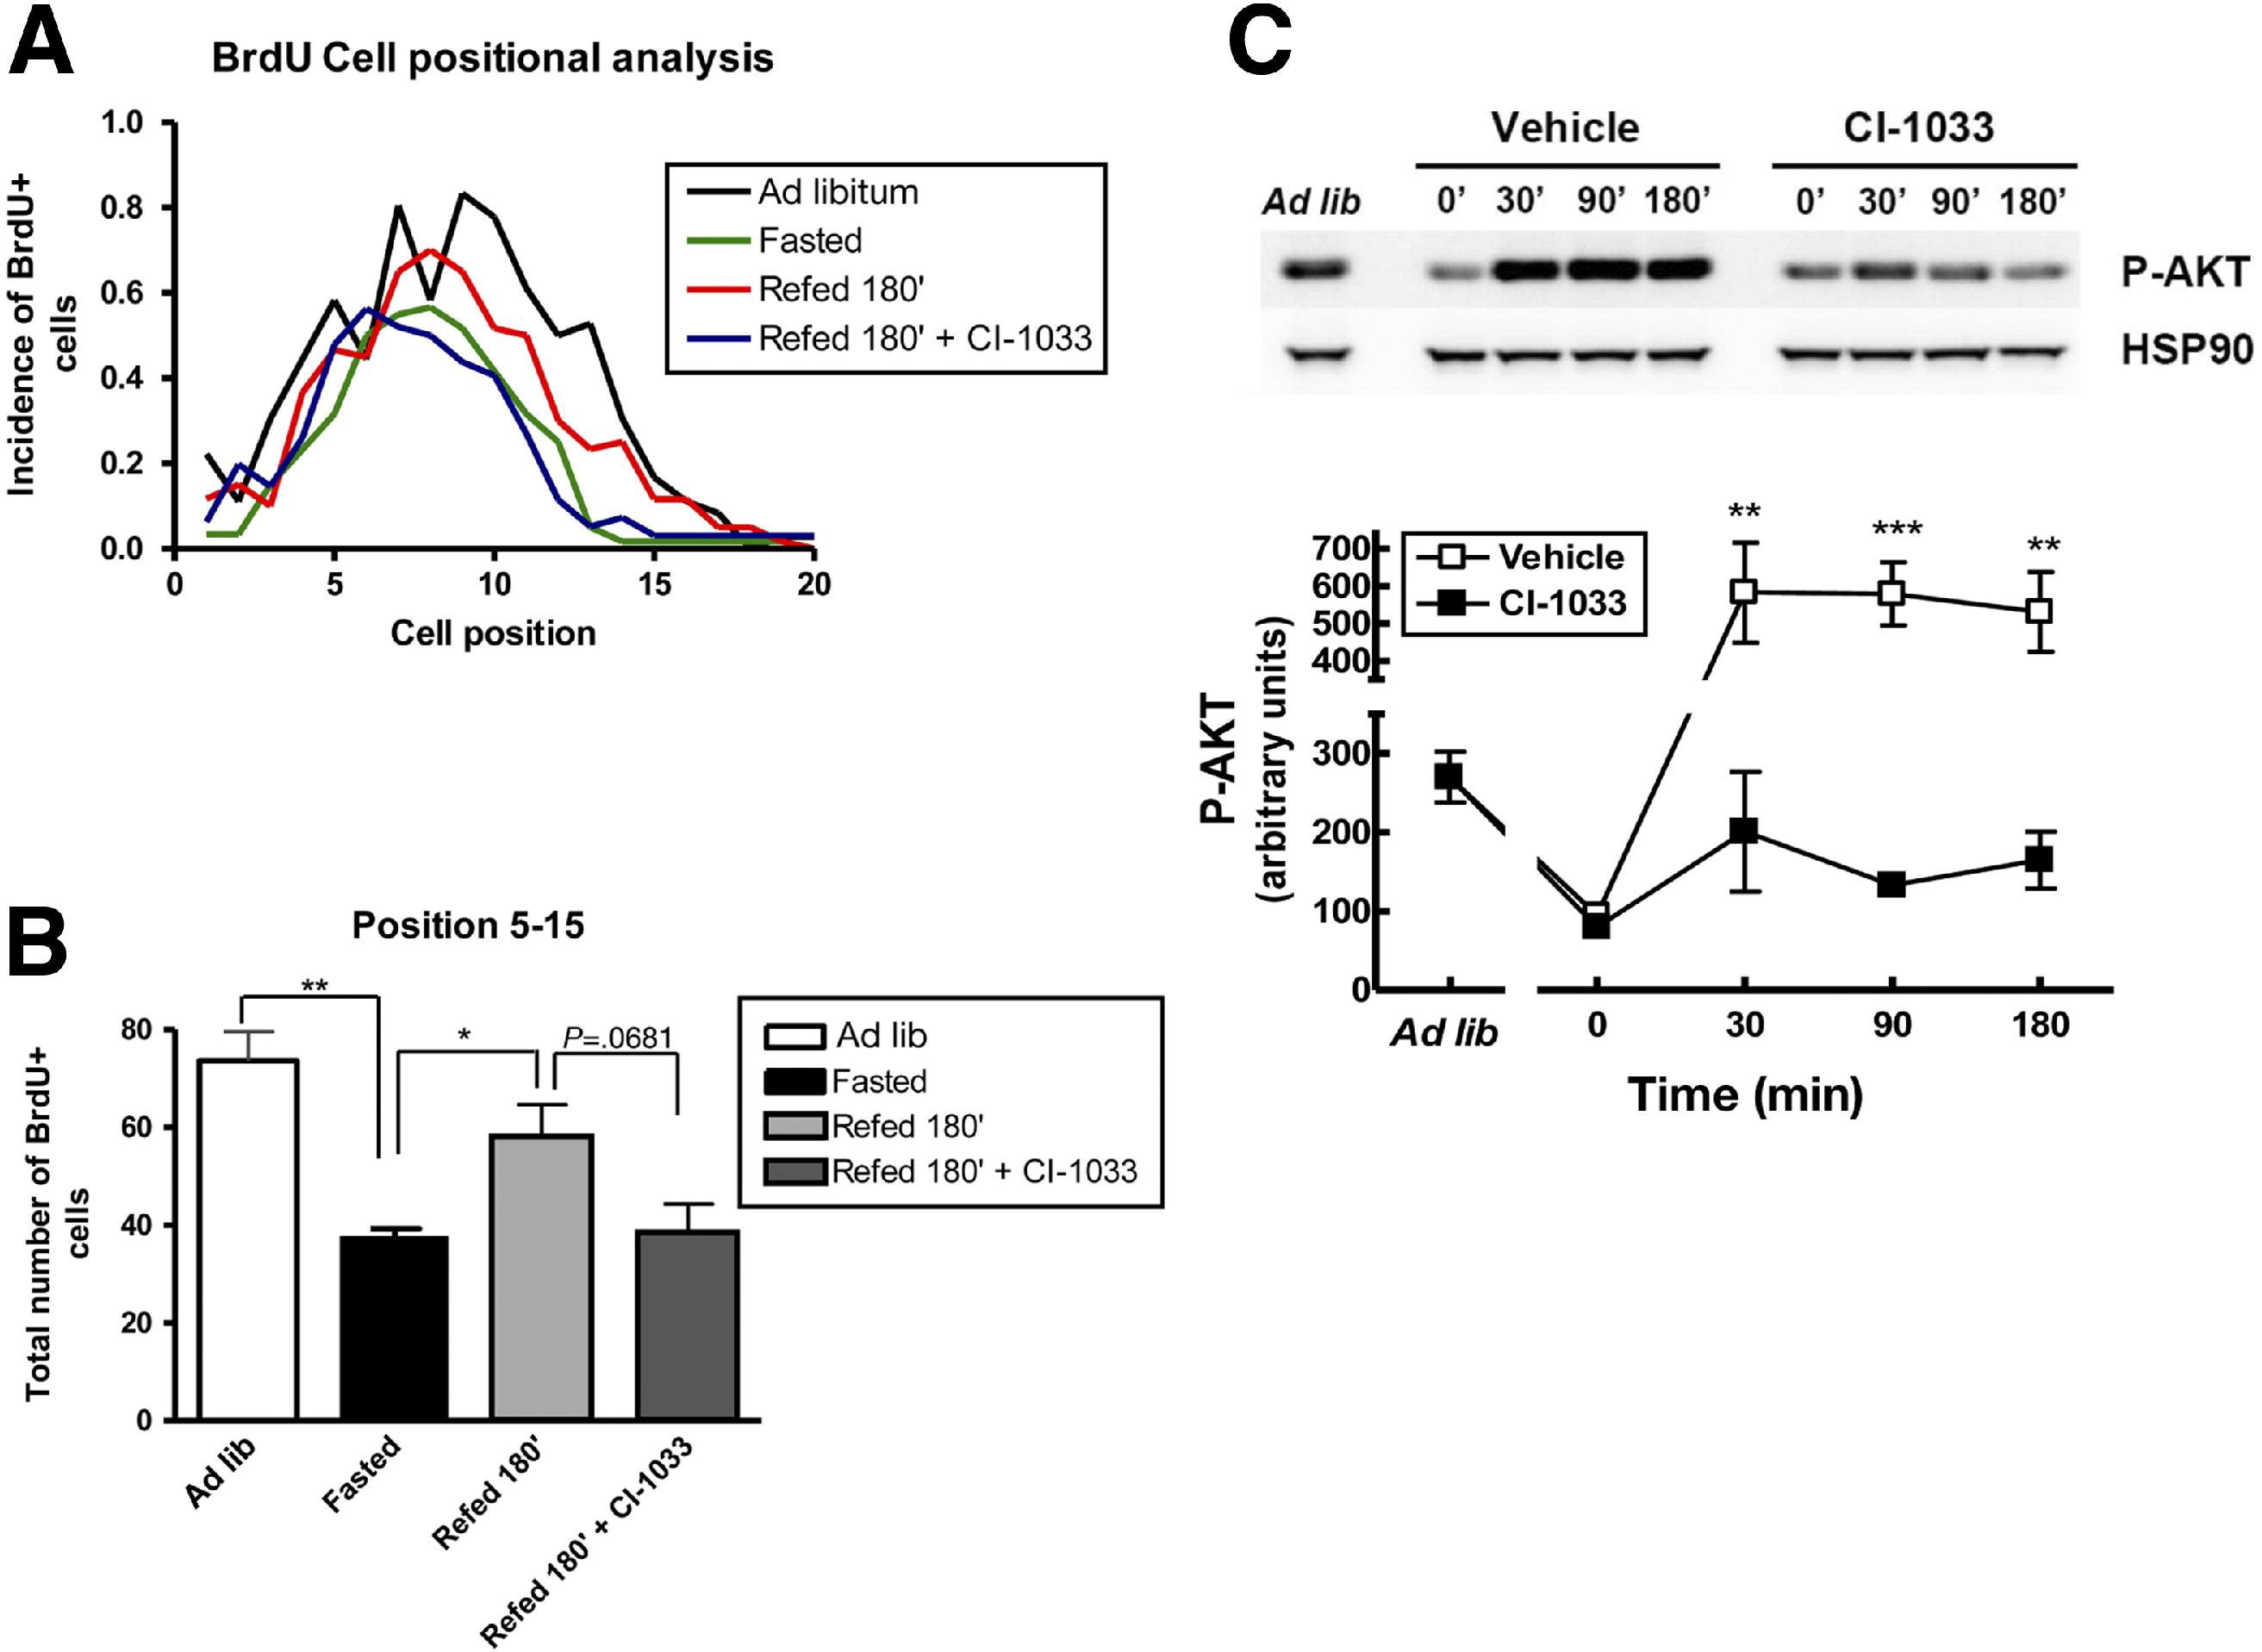 Erbb Activity Links The Glucagon Like Peptide 2 Receptor To Refeeding Induced Adaptation In The